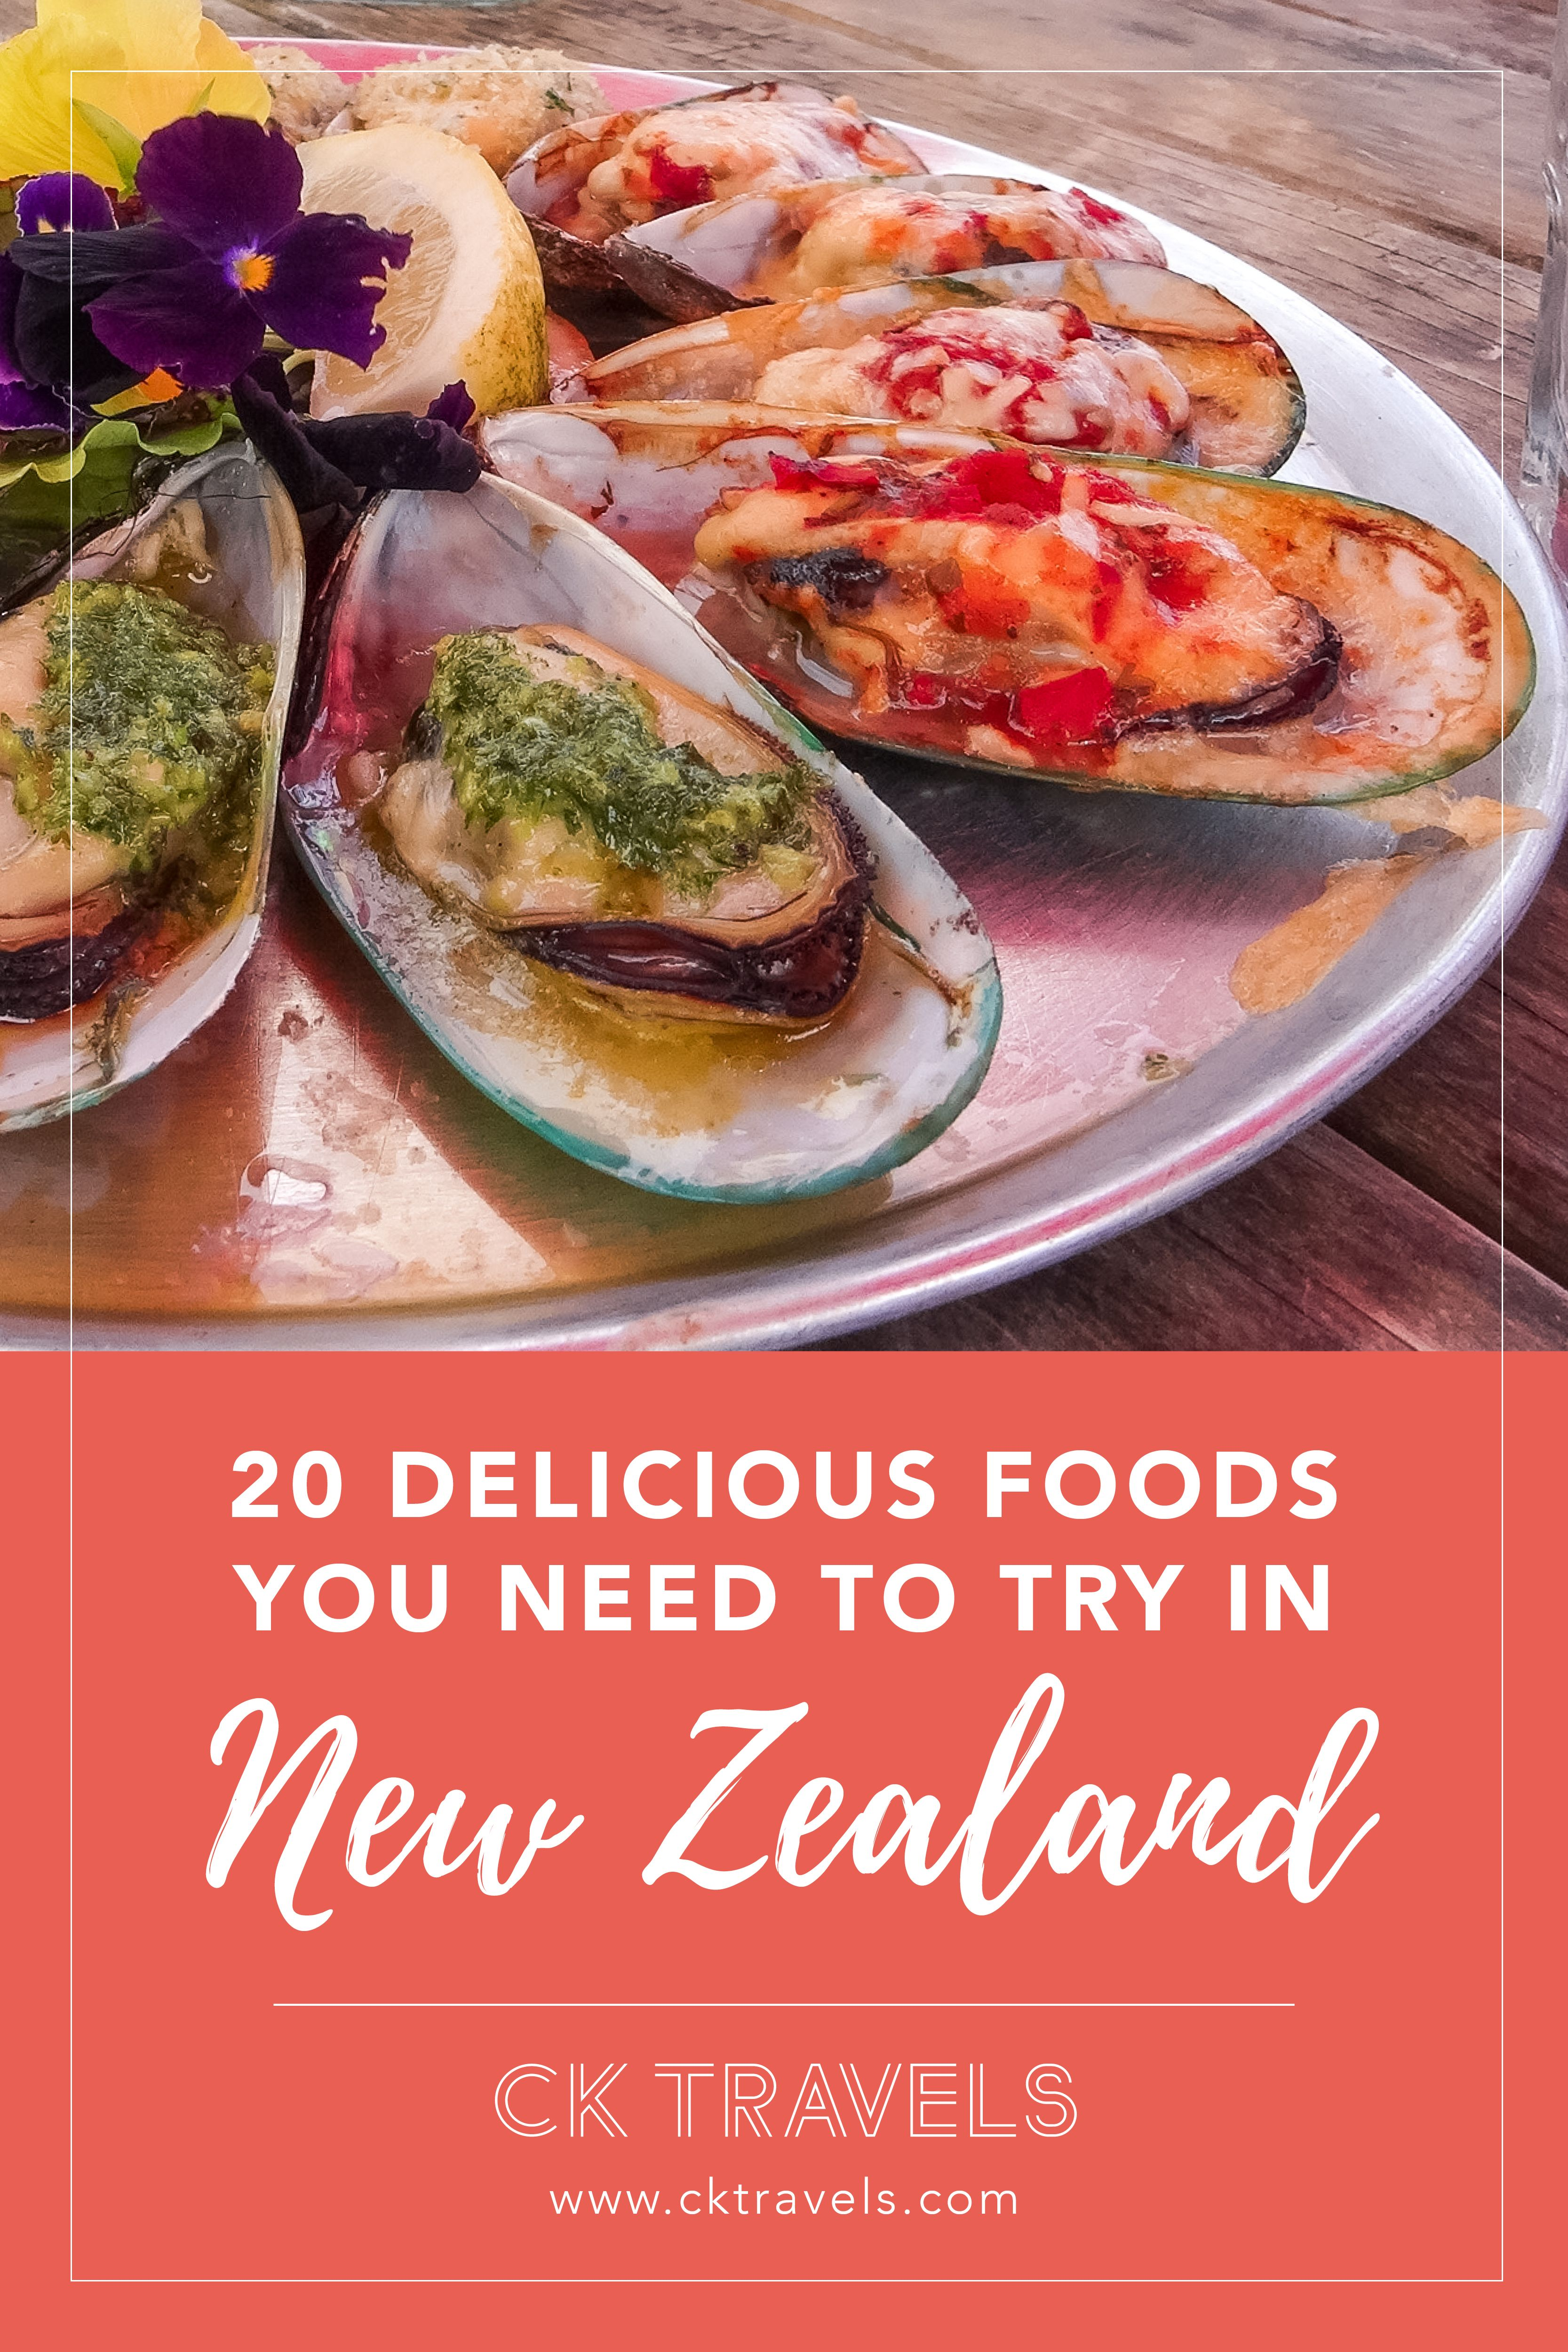 20 New Zealand Food And Drinks Items You Need To Try Food Drink Nz Newzealand Kiwi Mussels E New Zealand Food New Zealand Food And Drink Culinary Travel